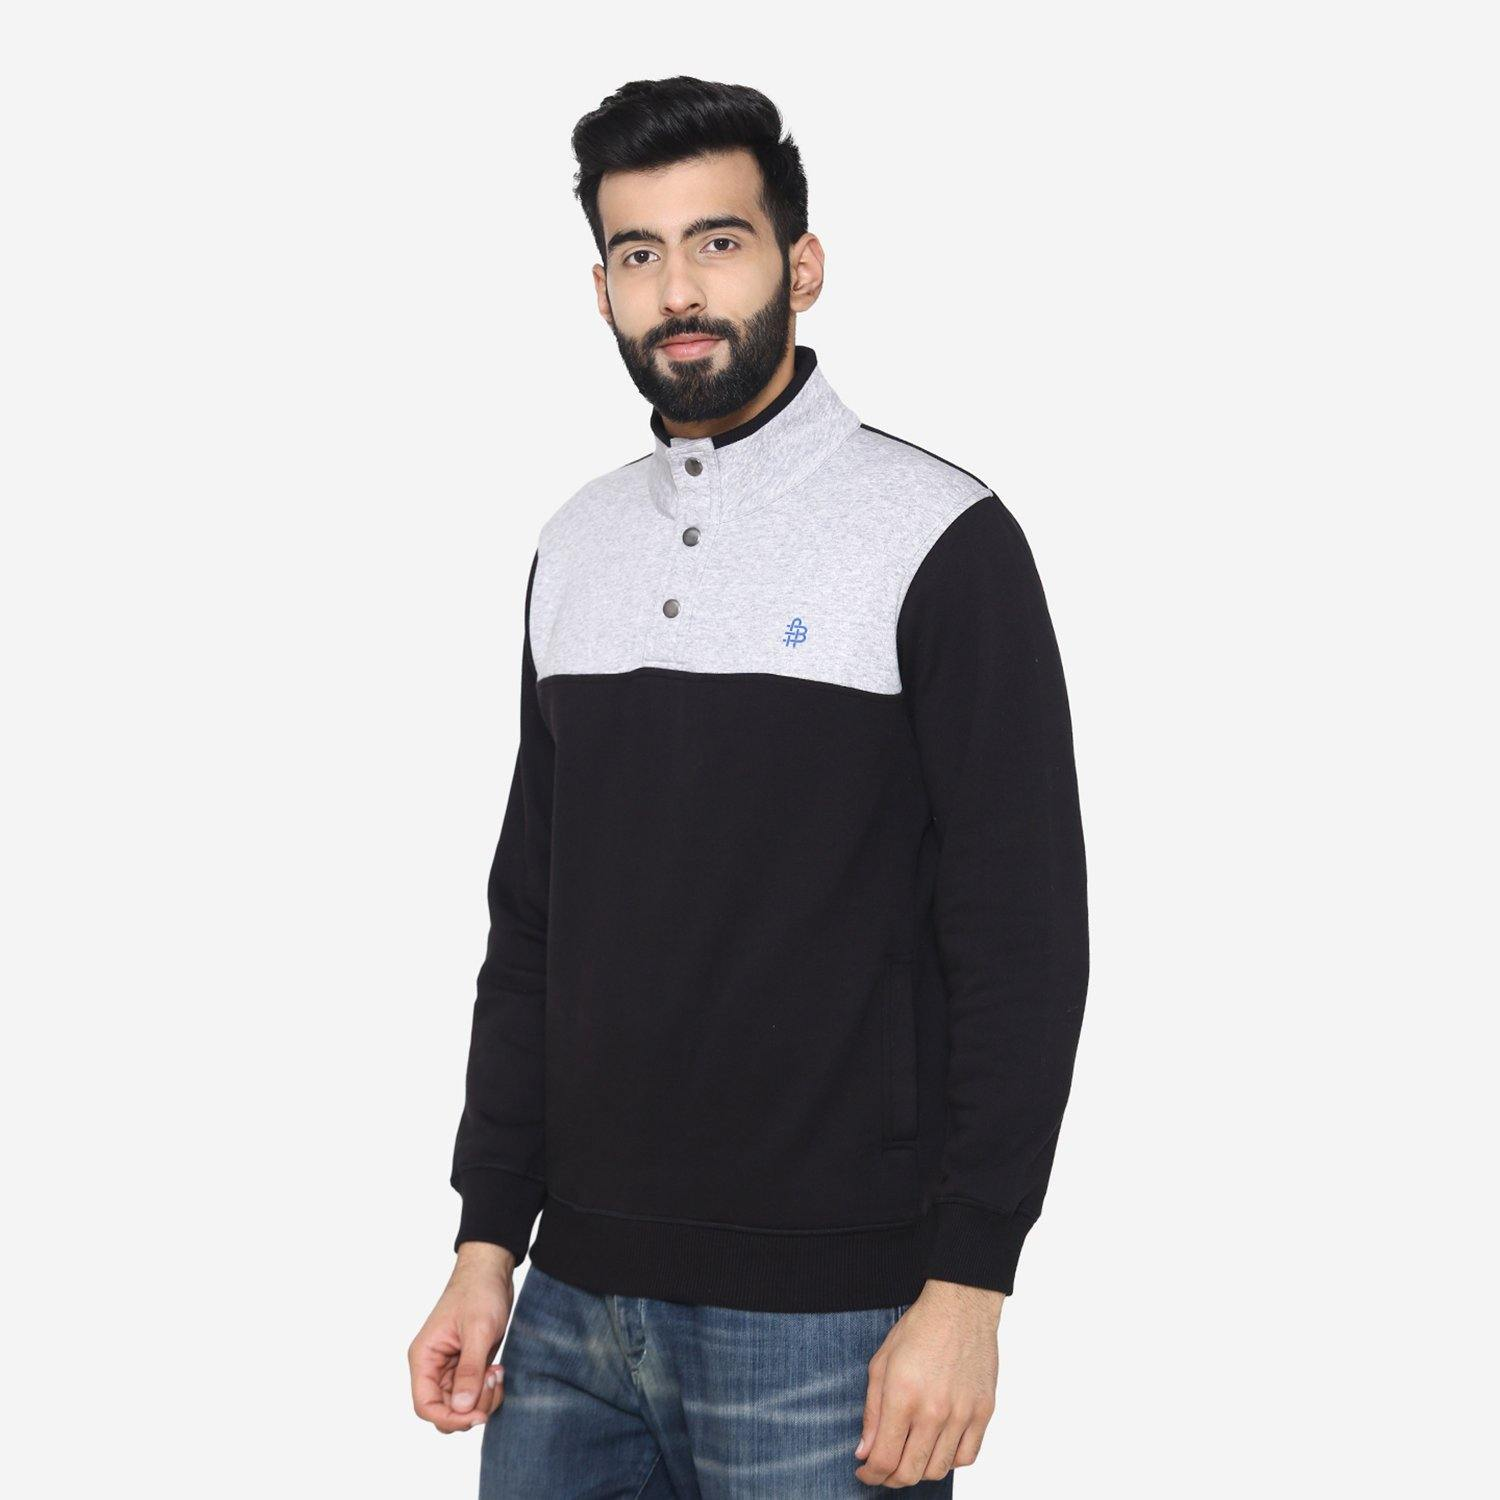 Men's winter bi-color  sweatshirt -Black / Light Grey